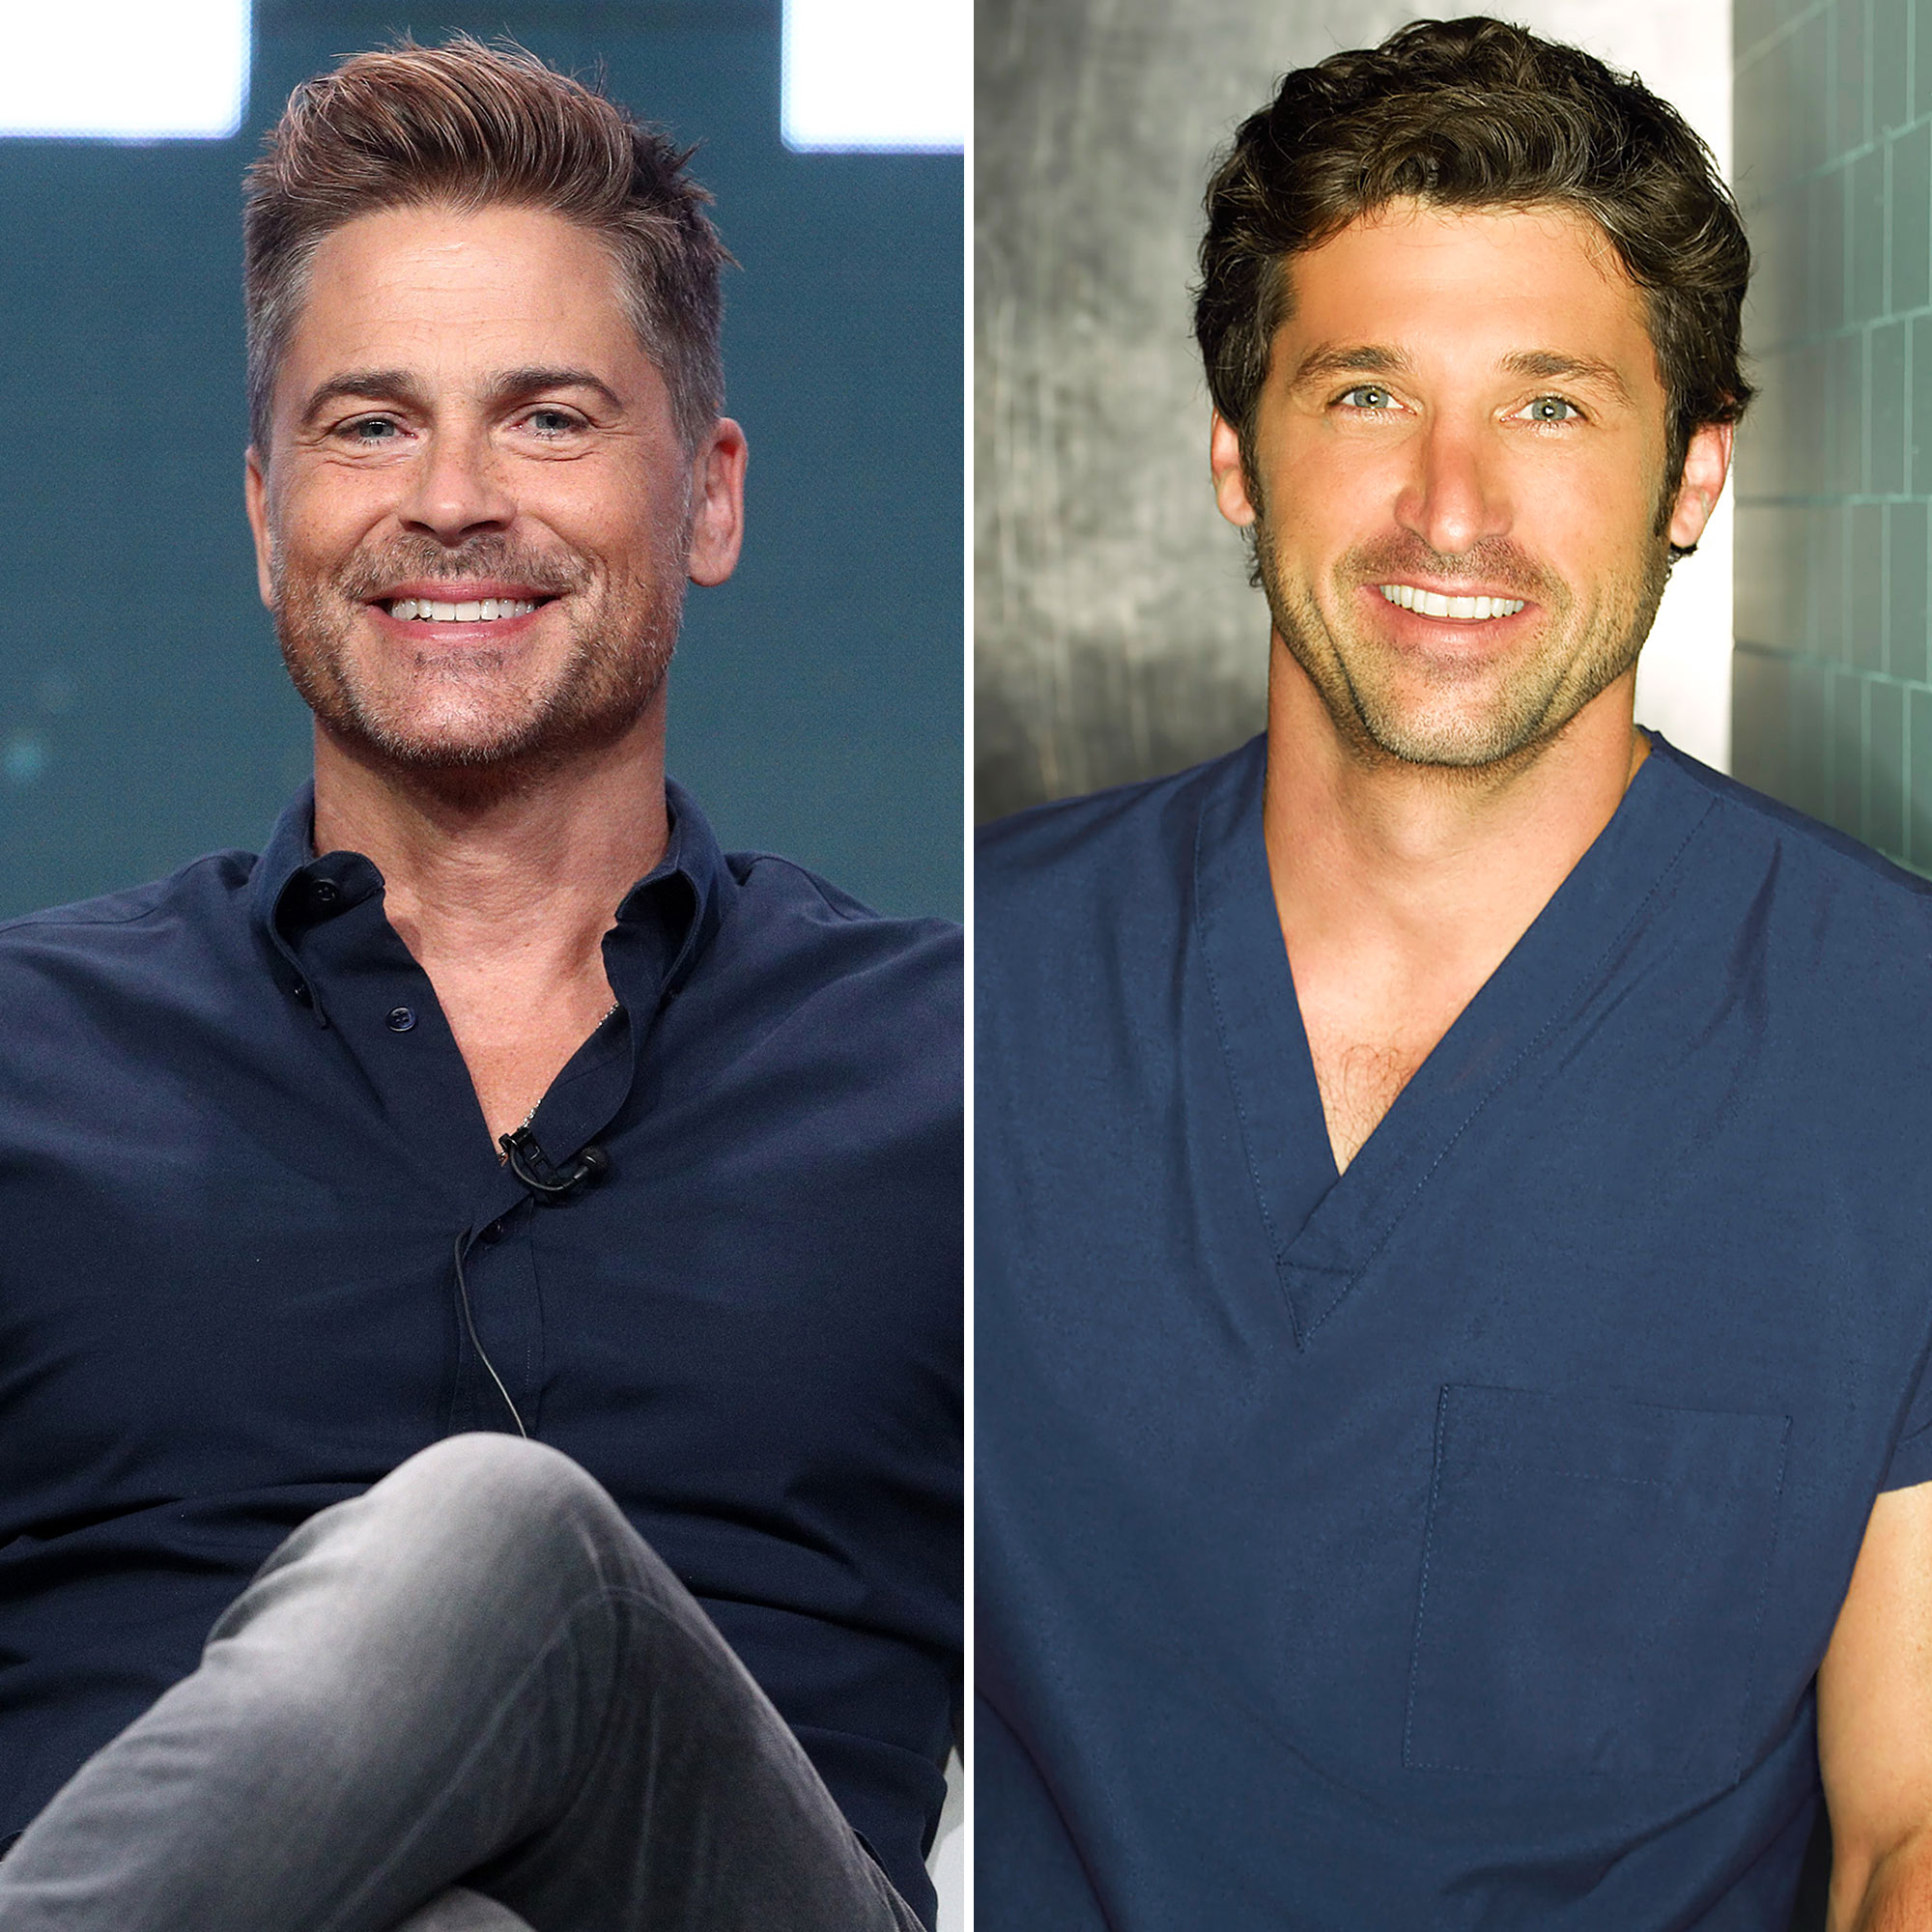 Rob Lowe Jokes McDreamy Greys Anatomy Role Cost Him 70 Million - Rob Lowe and Patrick Dempsey as Derek Shepherd.